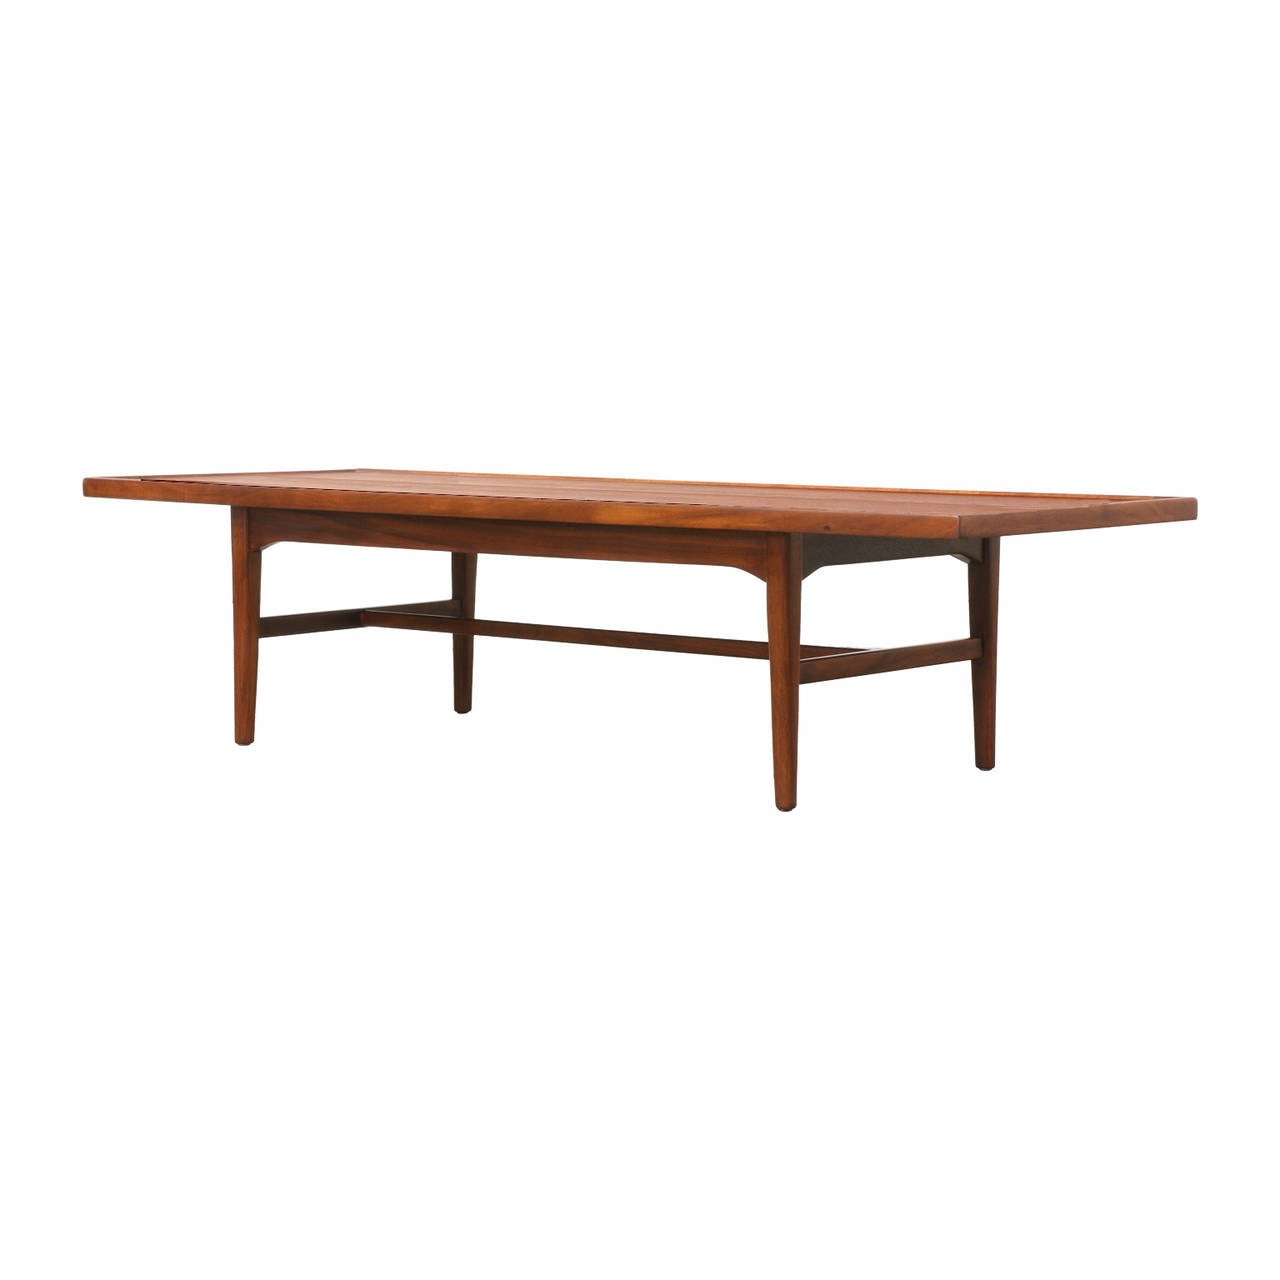 Stewart Mcdougall And Kipp Stewart Declaration Coffee Table For Drexel At 1stdibs